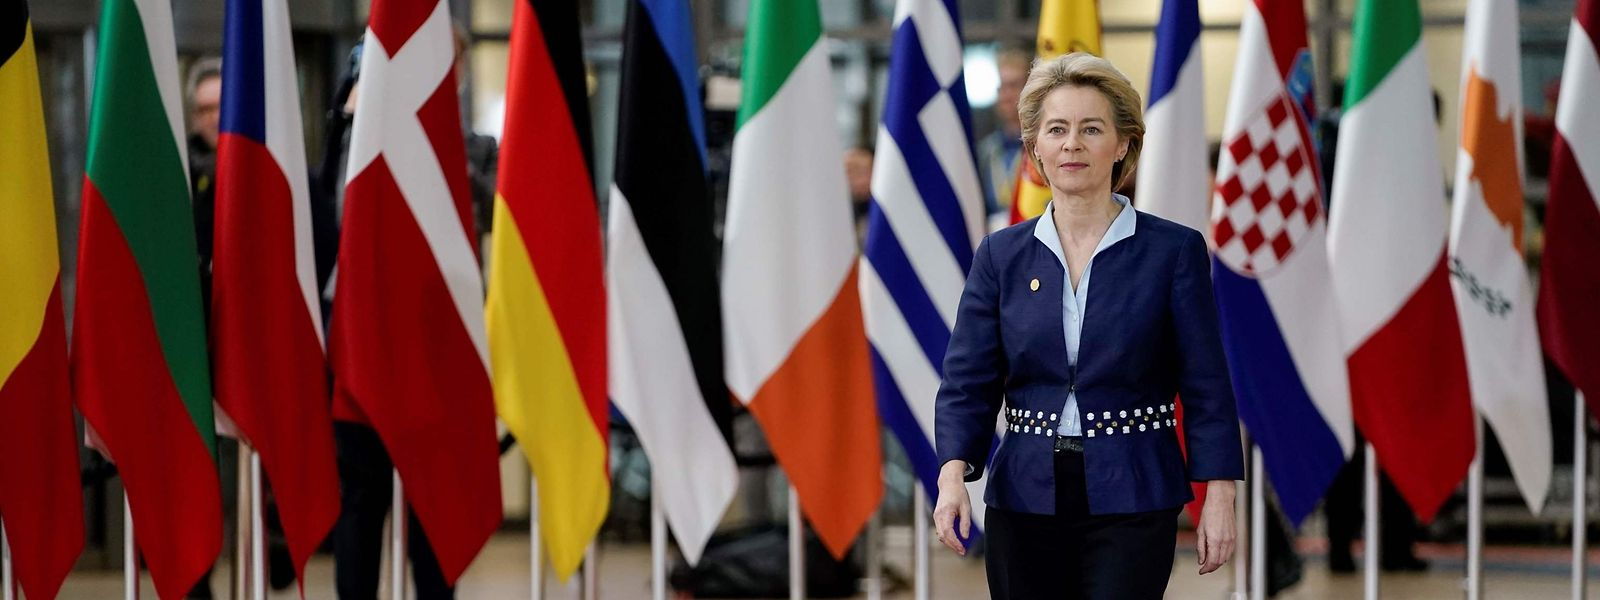 """(FILES) In this file photo taken on December 12, 2019 President of the European Commission Ursula von der Leyen arrives for a European Union Summit at the Europa building in Brussels. - The EU commission chief has defended the slower Covid-19 vaccine rollout in the bloc as a """"good decision"""", saying the European Union would not put the safety of citizens at risk, in an interview published on February 2, 2021. (Photo by Kenzo TRIBOUILLARD / AFP)"""